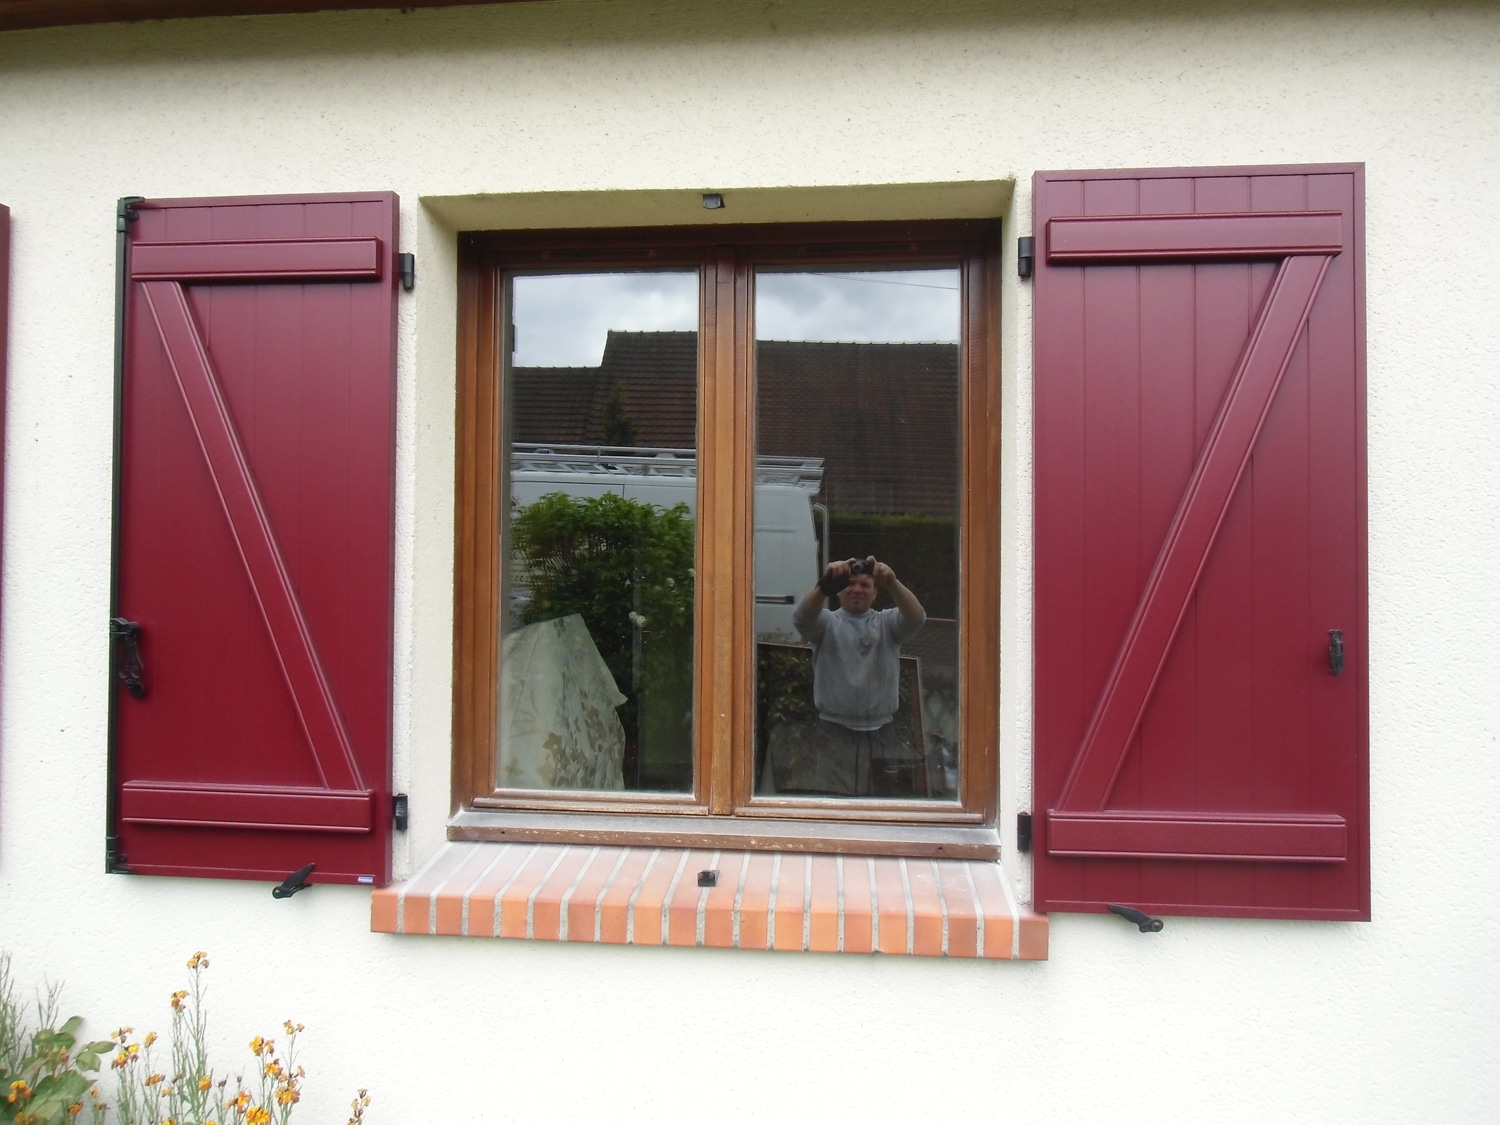 volets-rouges-menuiserie-chevallier-freres-orleans-2